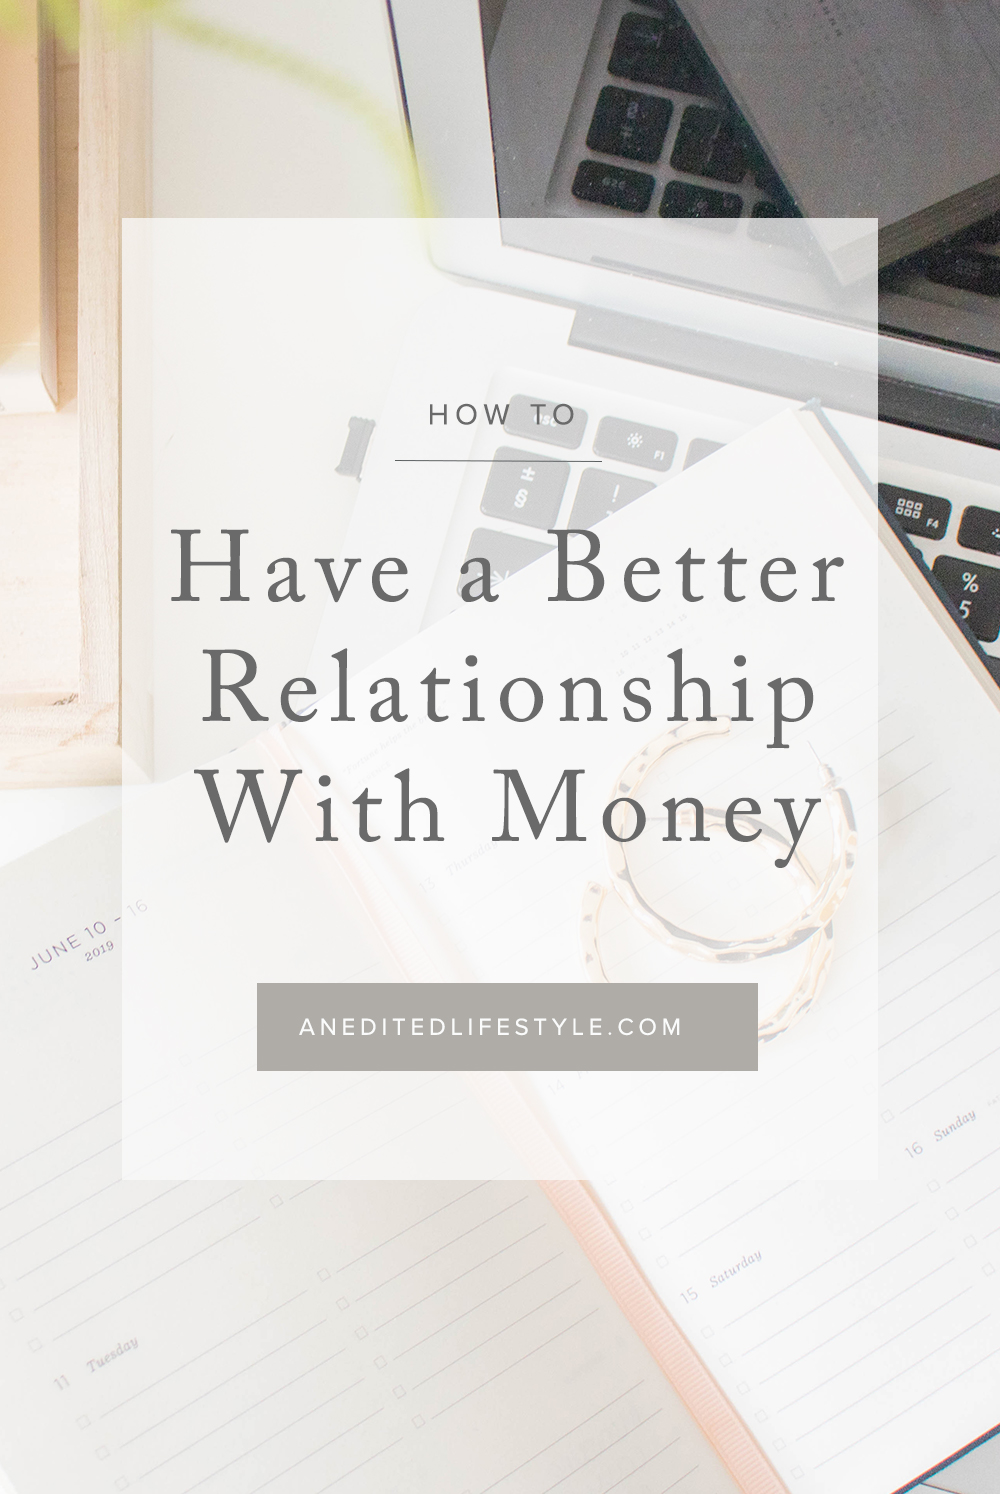 an edited lifestyle better relationship with money